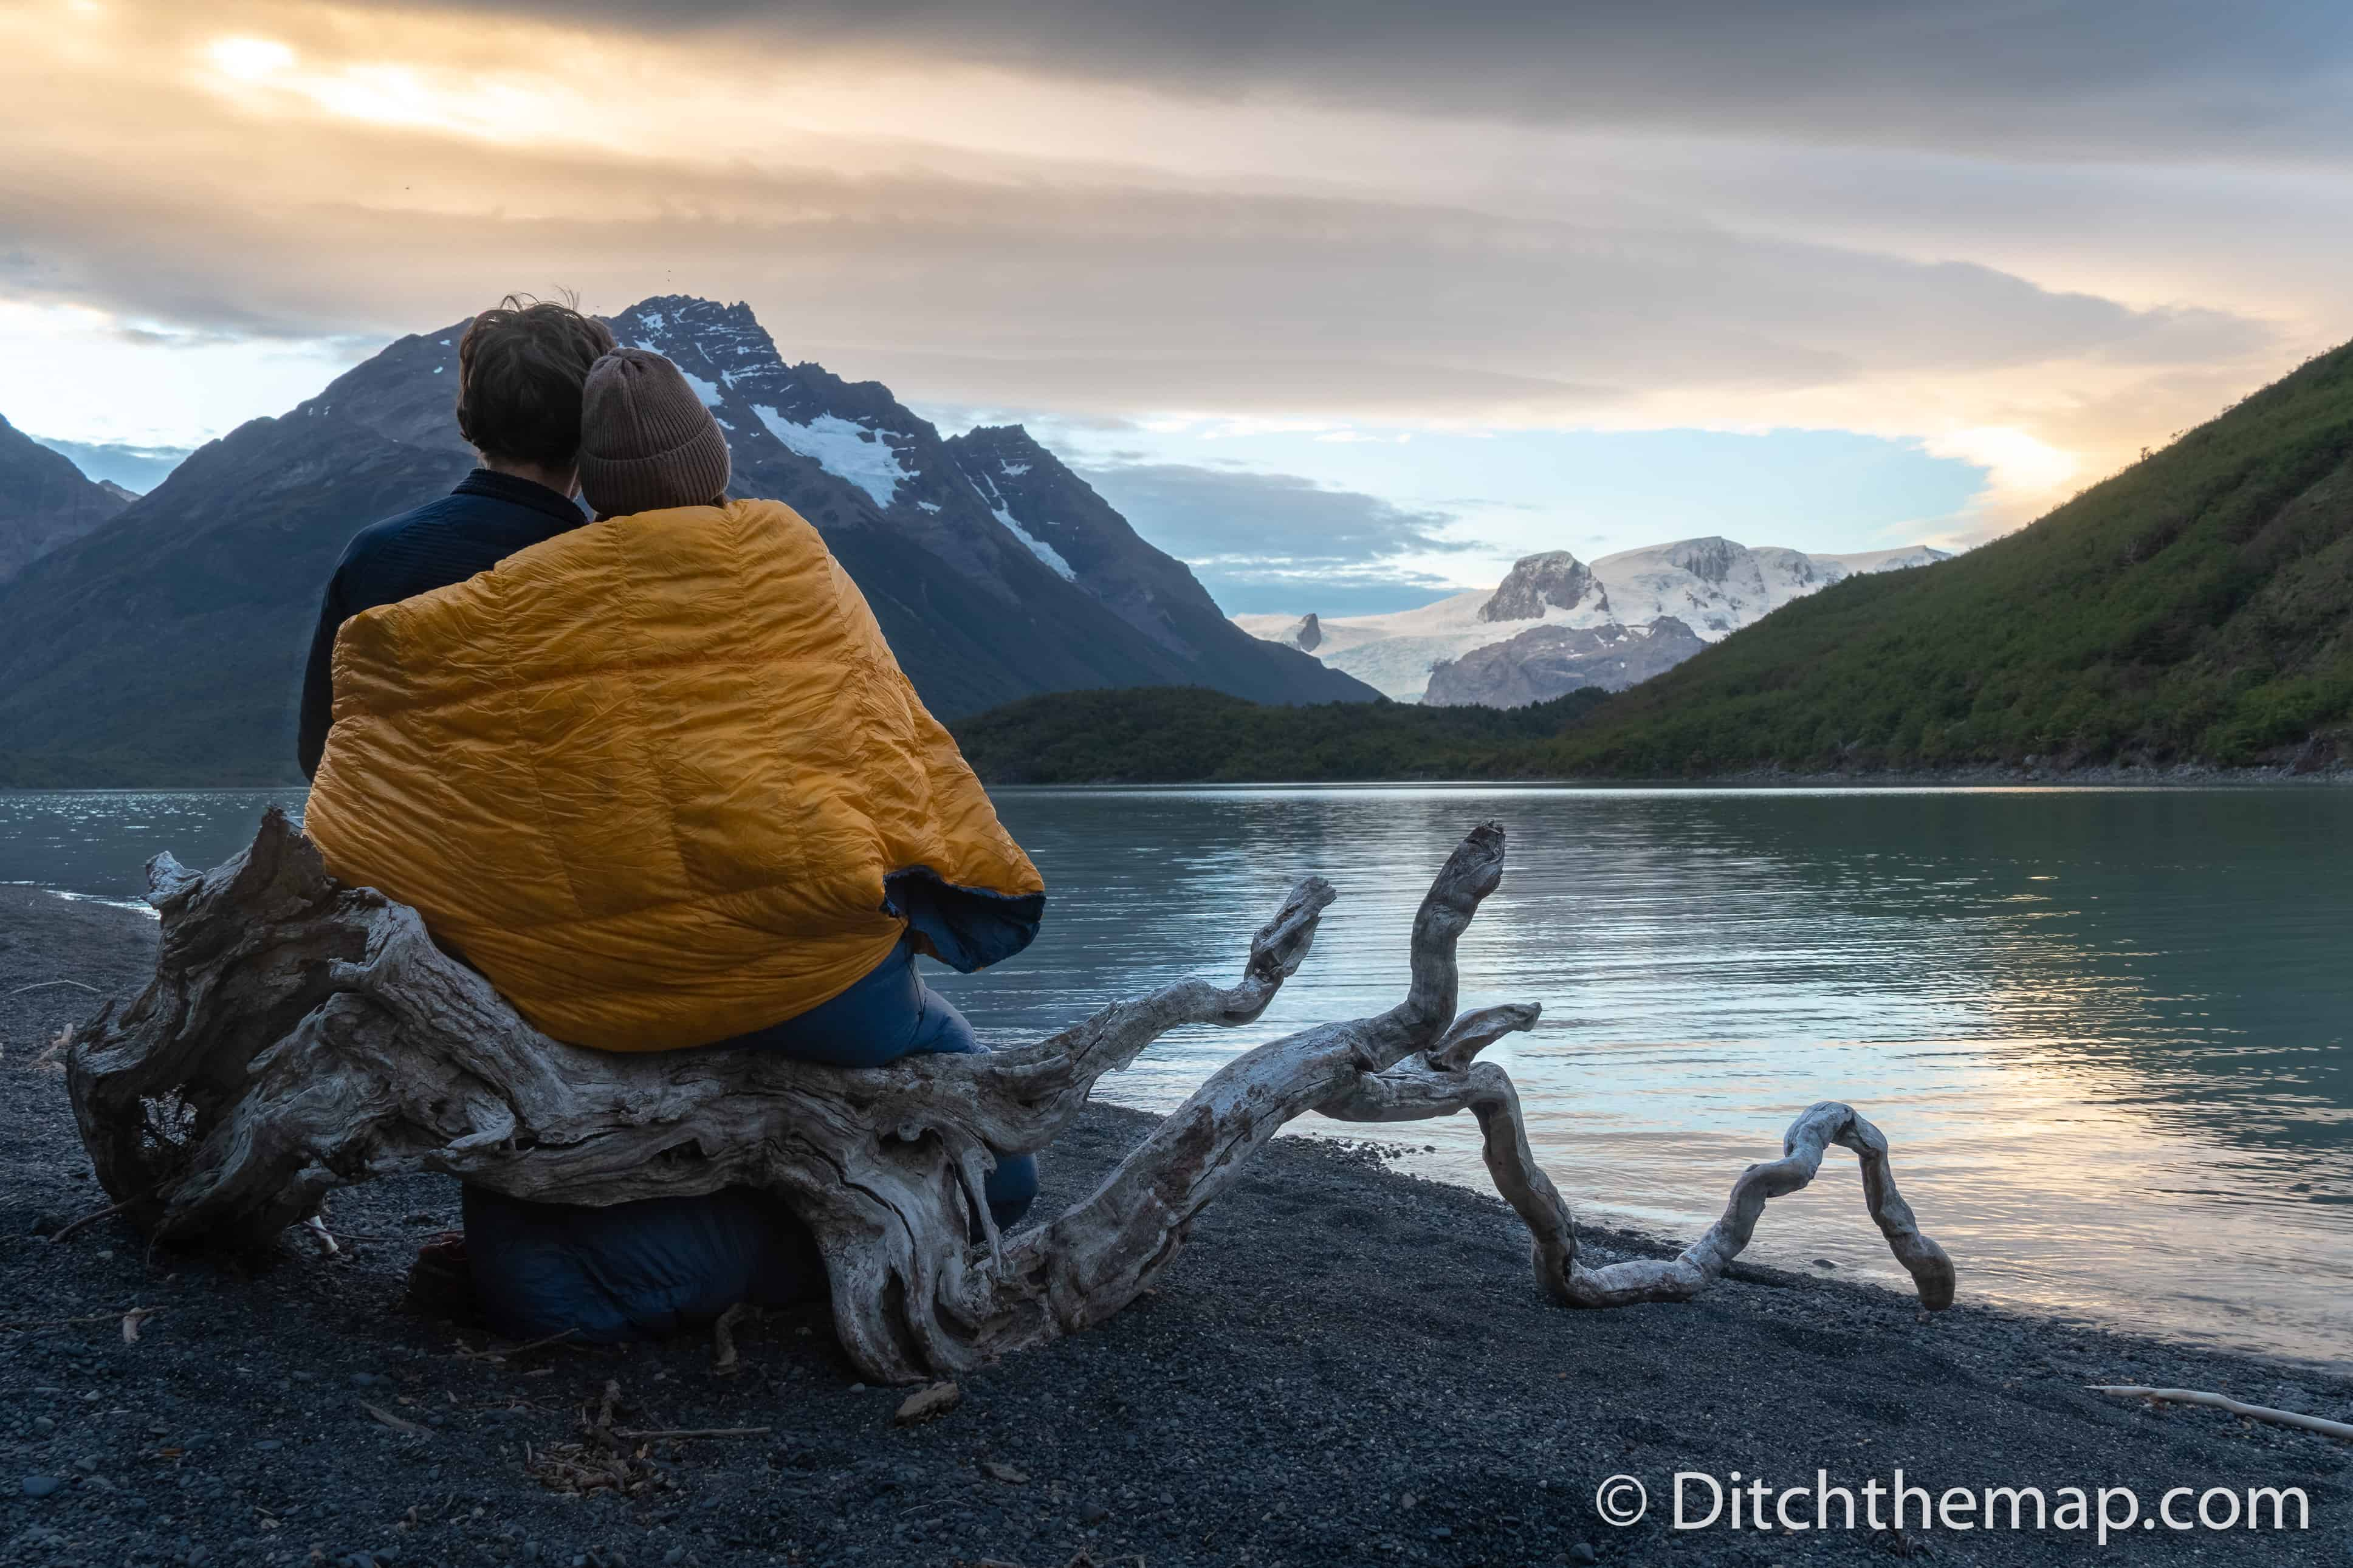 A couple keeping warm with a sleeping bag next to a cold lake and mountain view